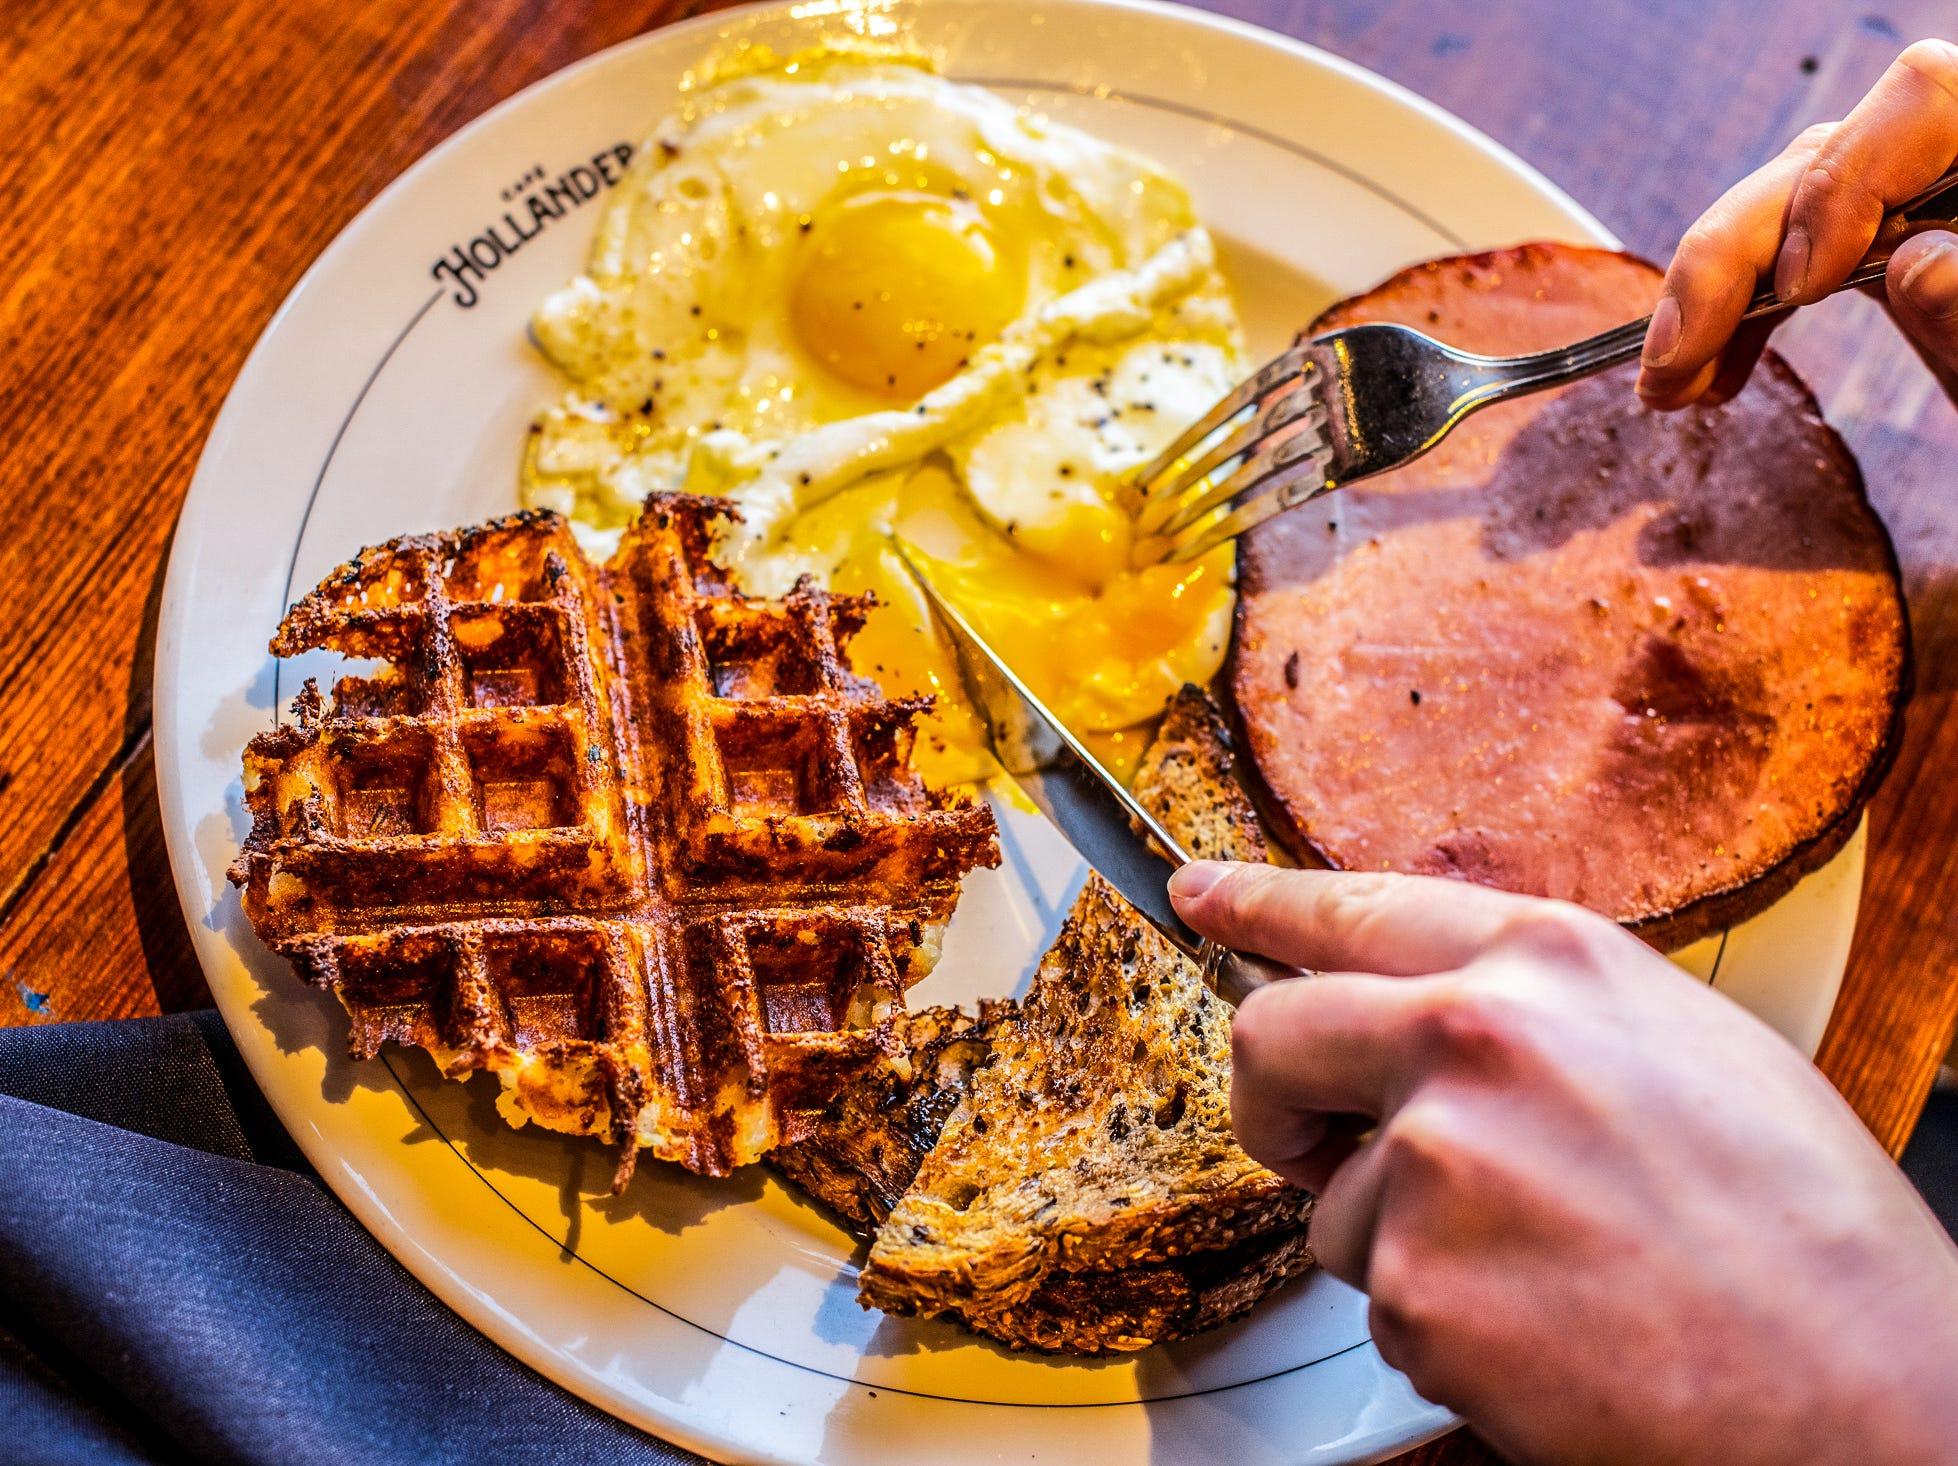 The Pan Seared Ham Steak is half a pound of local Badger ham and comes with two eggs any style, a wafflebrown and multigrain toast.